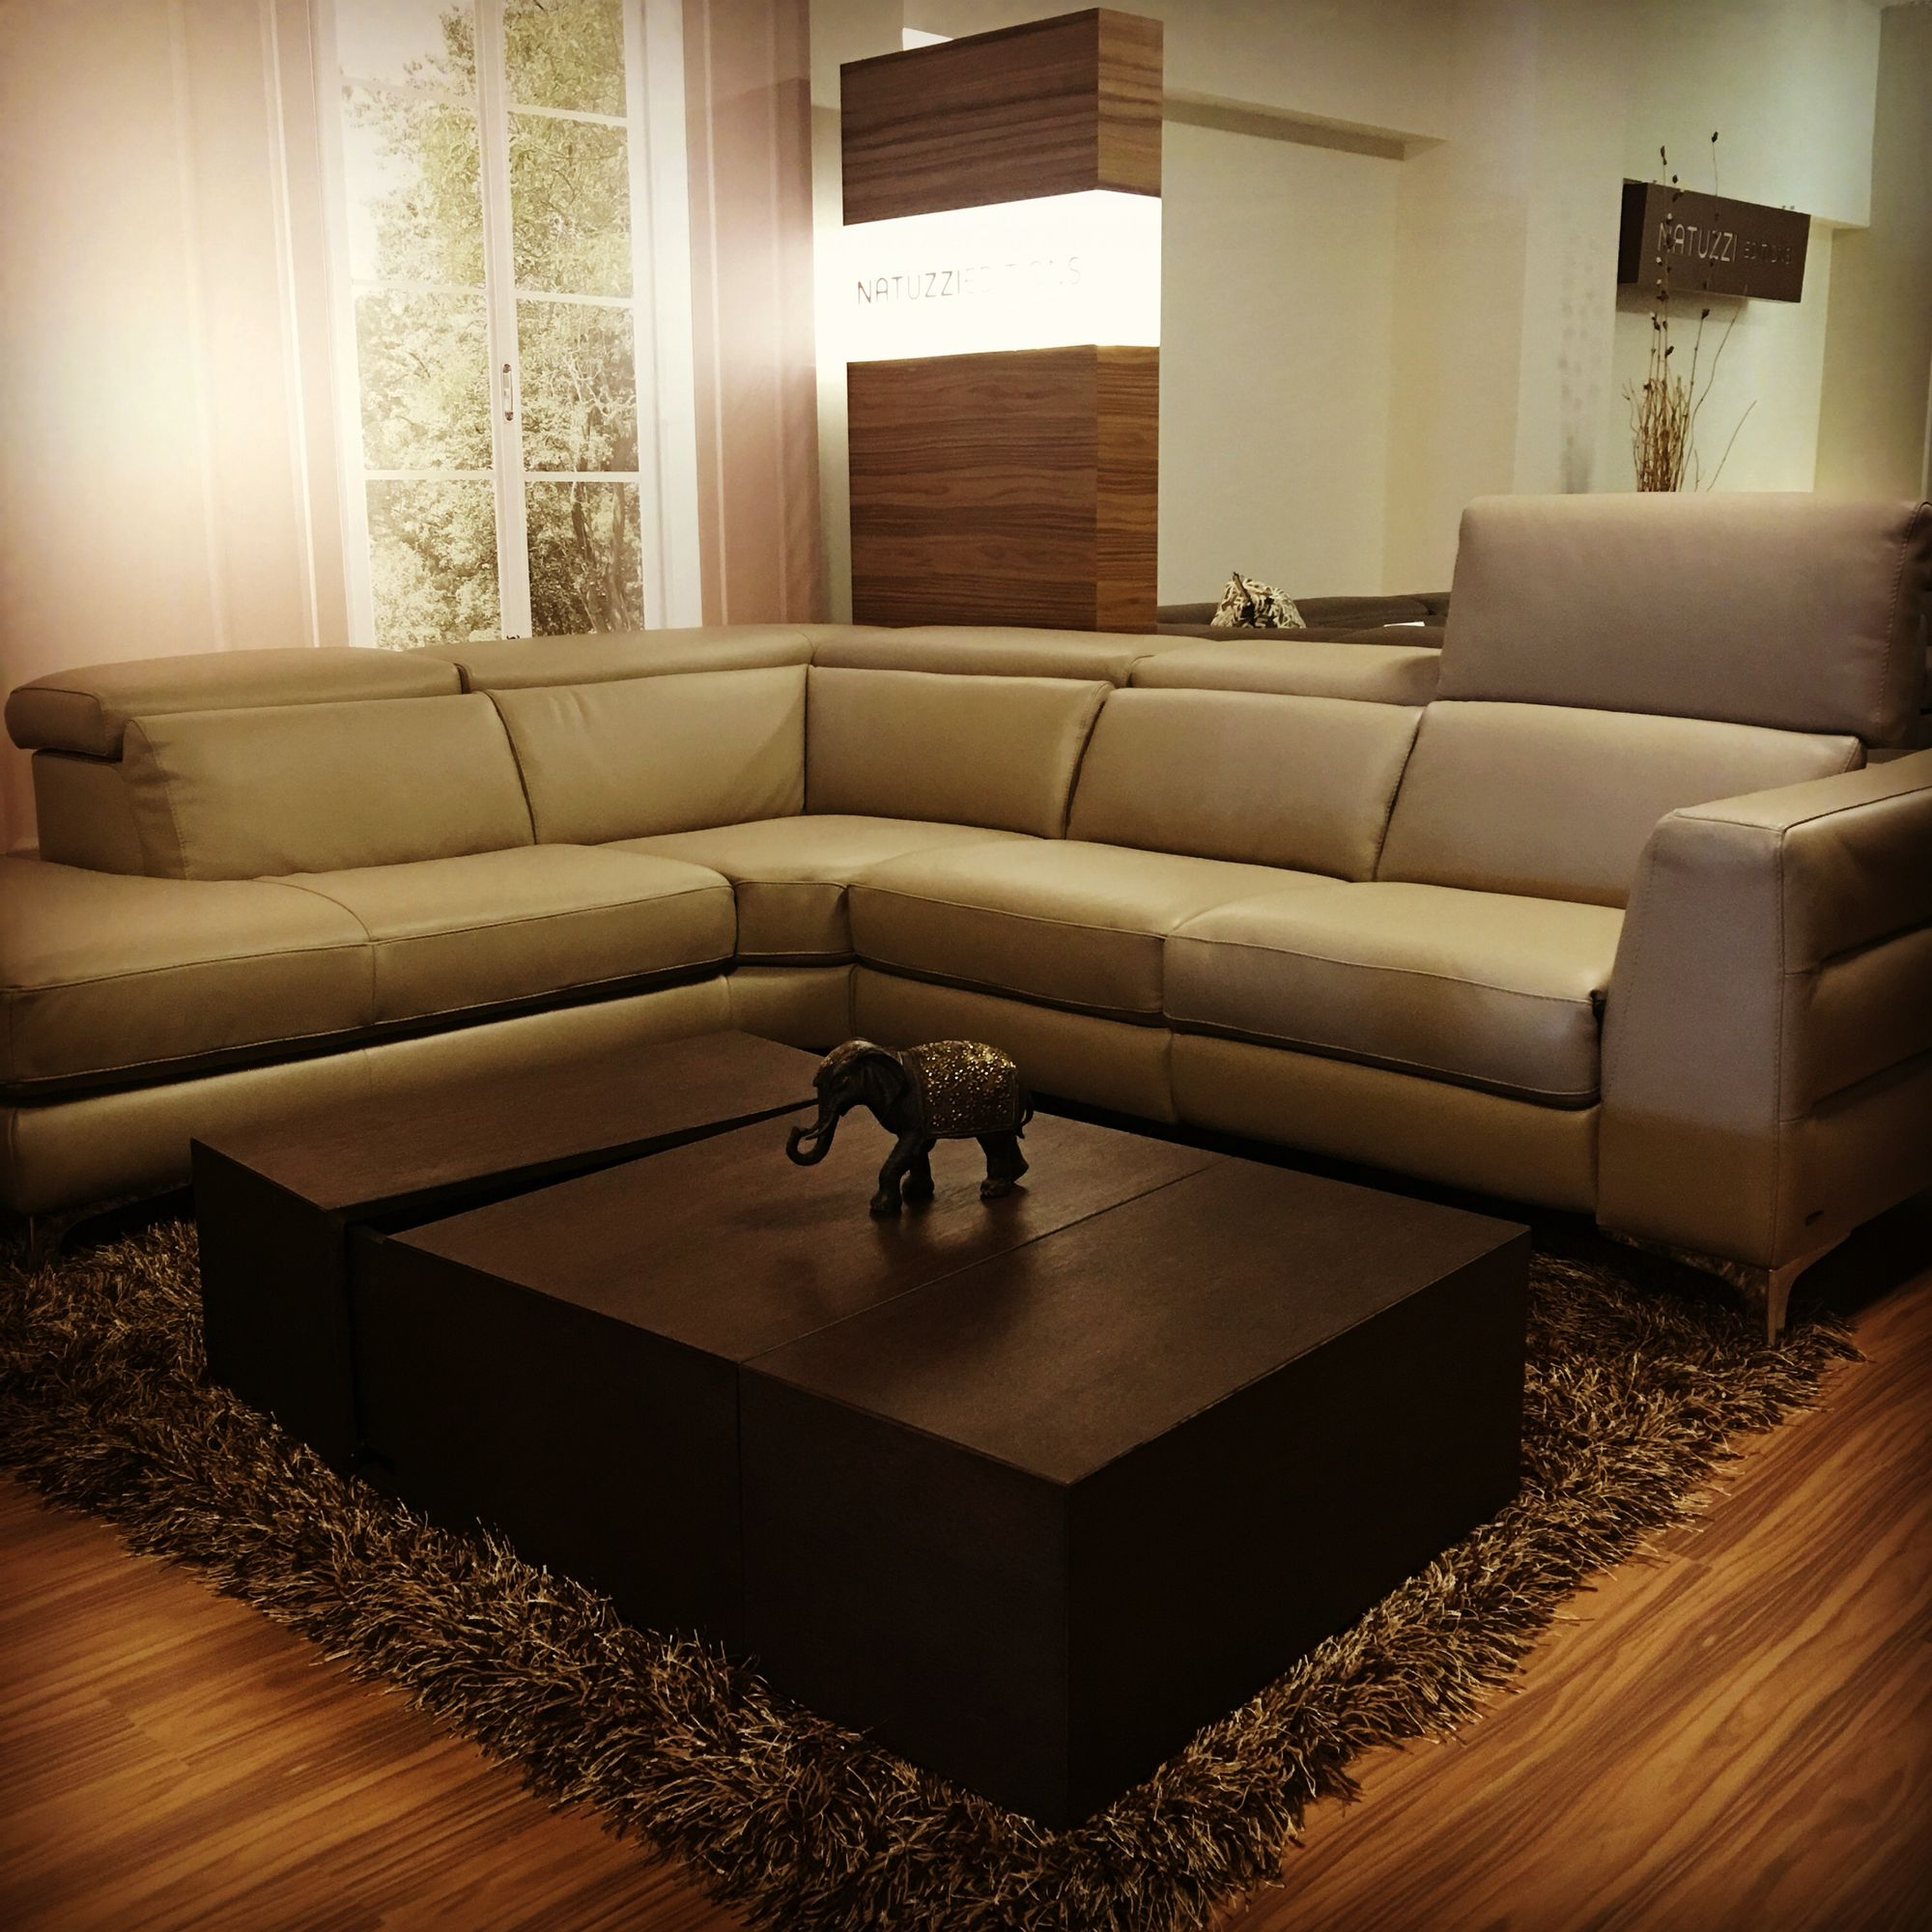 Leather Sectional Sofa Natuzzi leather reclining corner sofa Fabulous Italian quality pick your colour and have